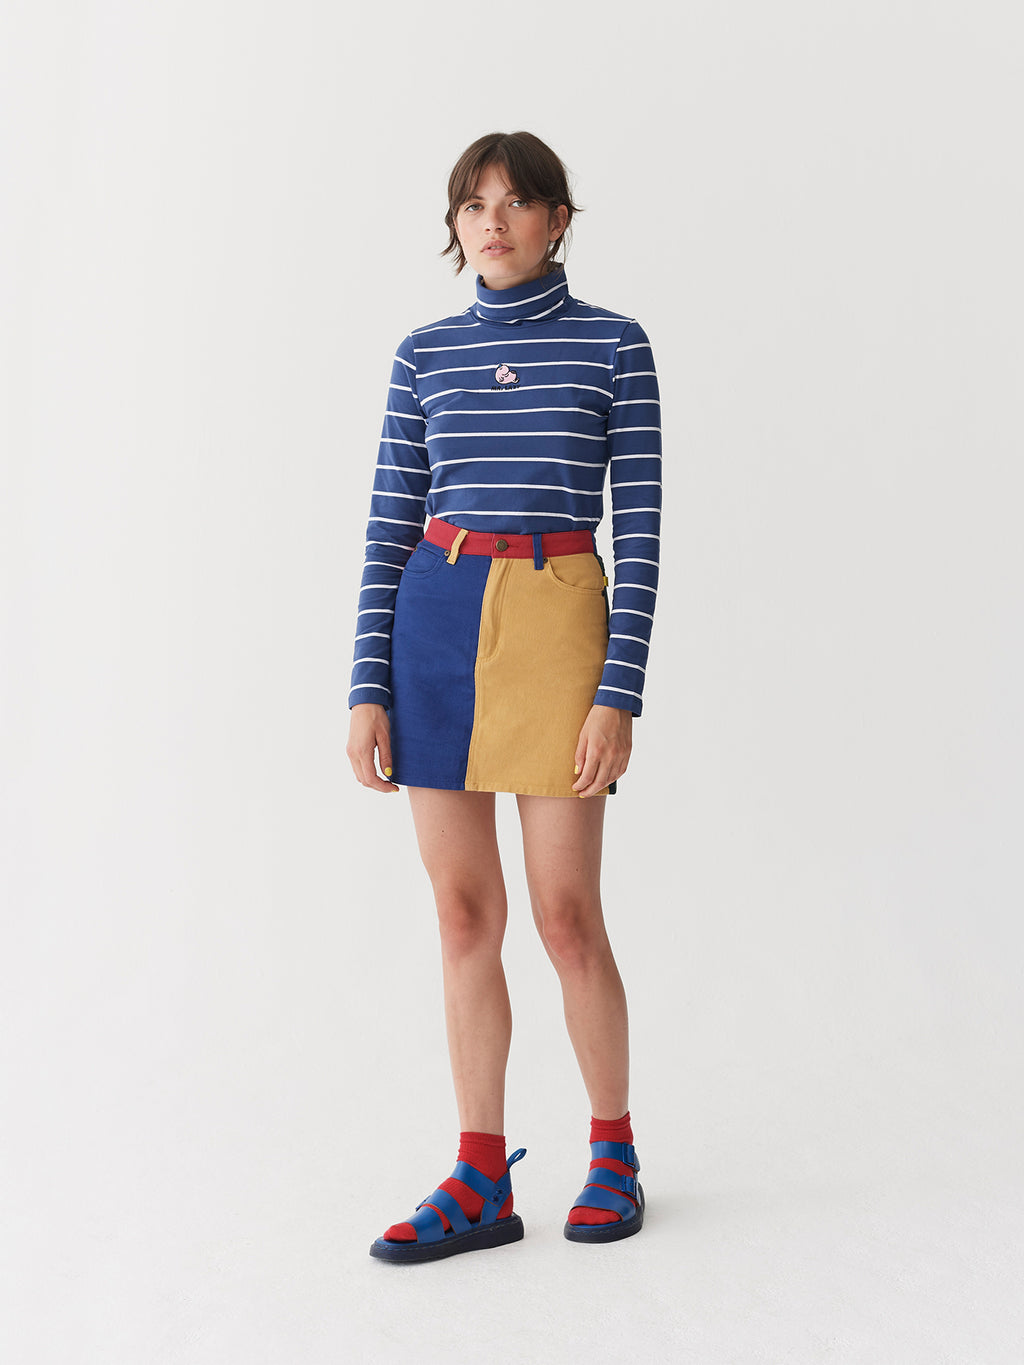 Lazy Oaf x Mr. Men Mr. Lazy Stripy Top